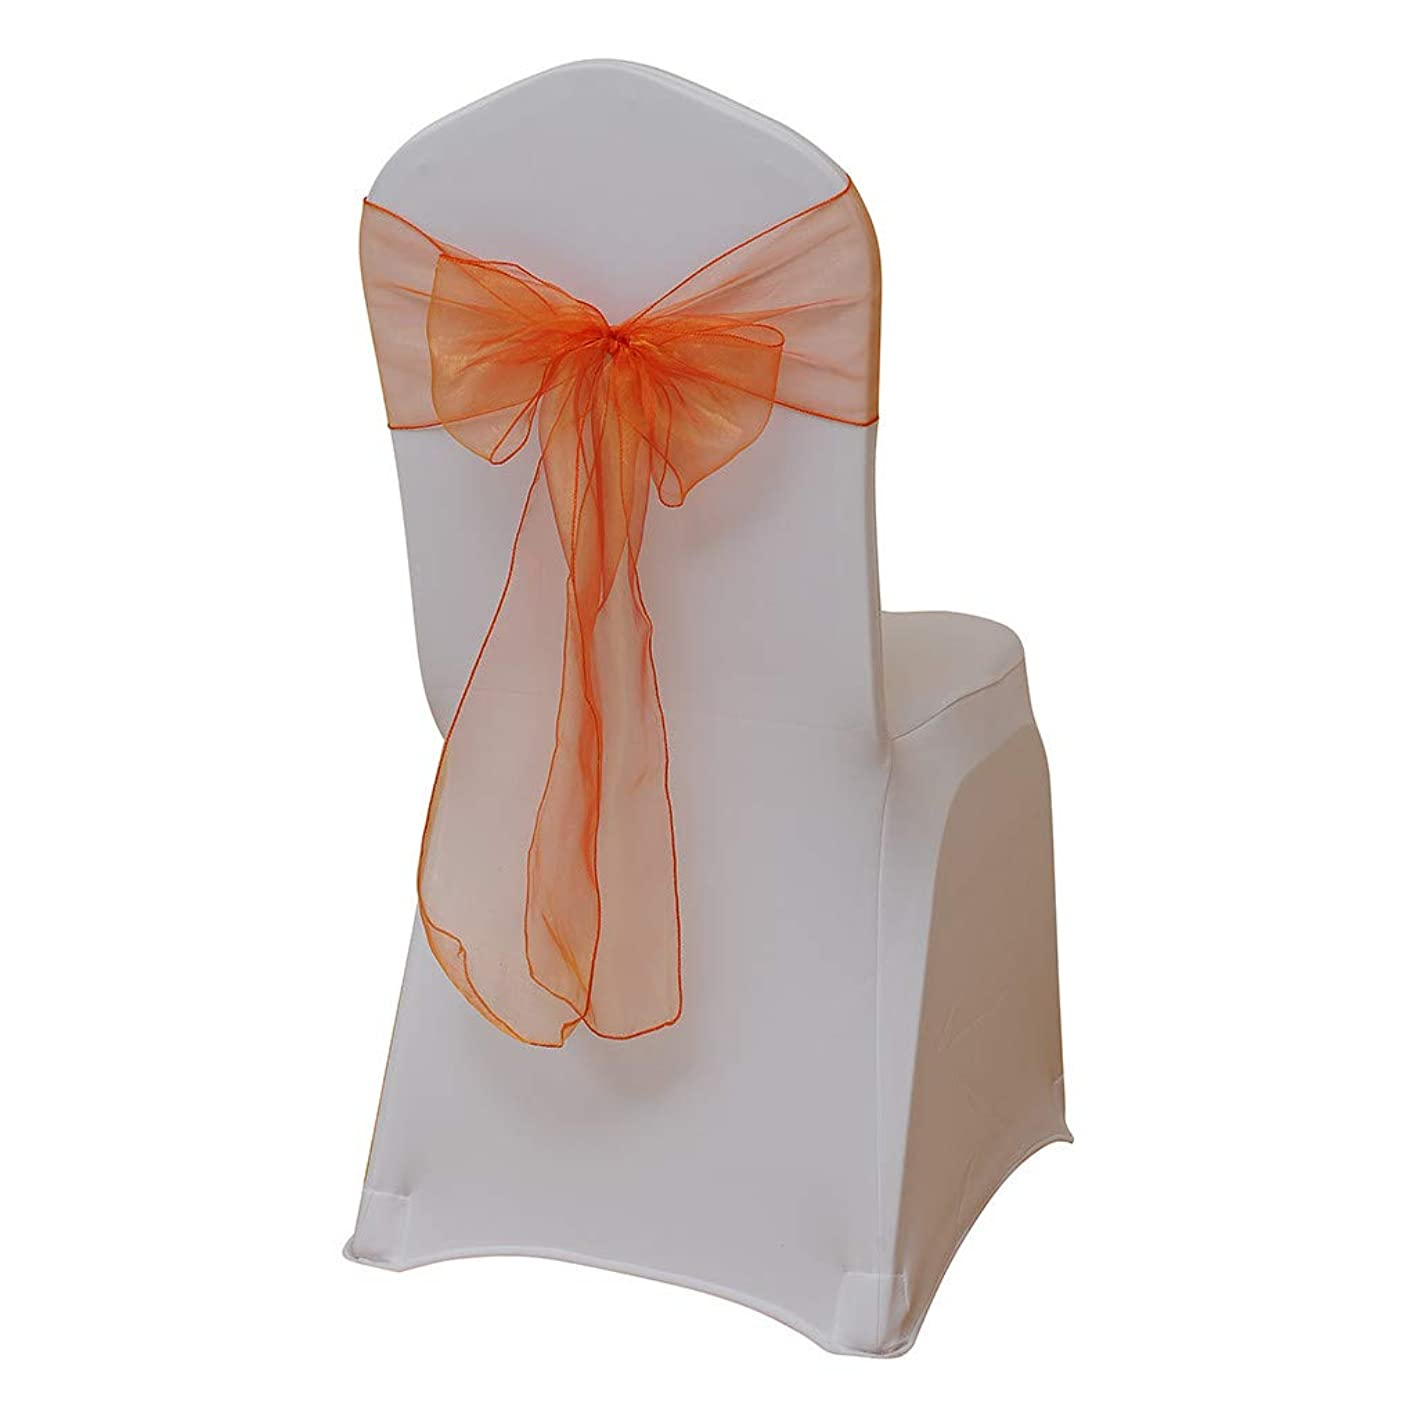 Hohaski 5 PCS Solid Color Flower Chair Back Band Covers, Organza Chair Sashes Bow Sash for Wedding and Events Supplies Party Decoration Chair Cover Sash (Orange) stpjlmixlwg988